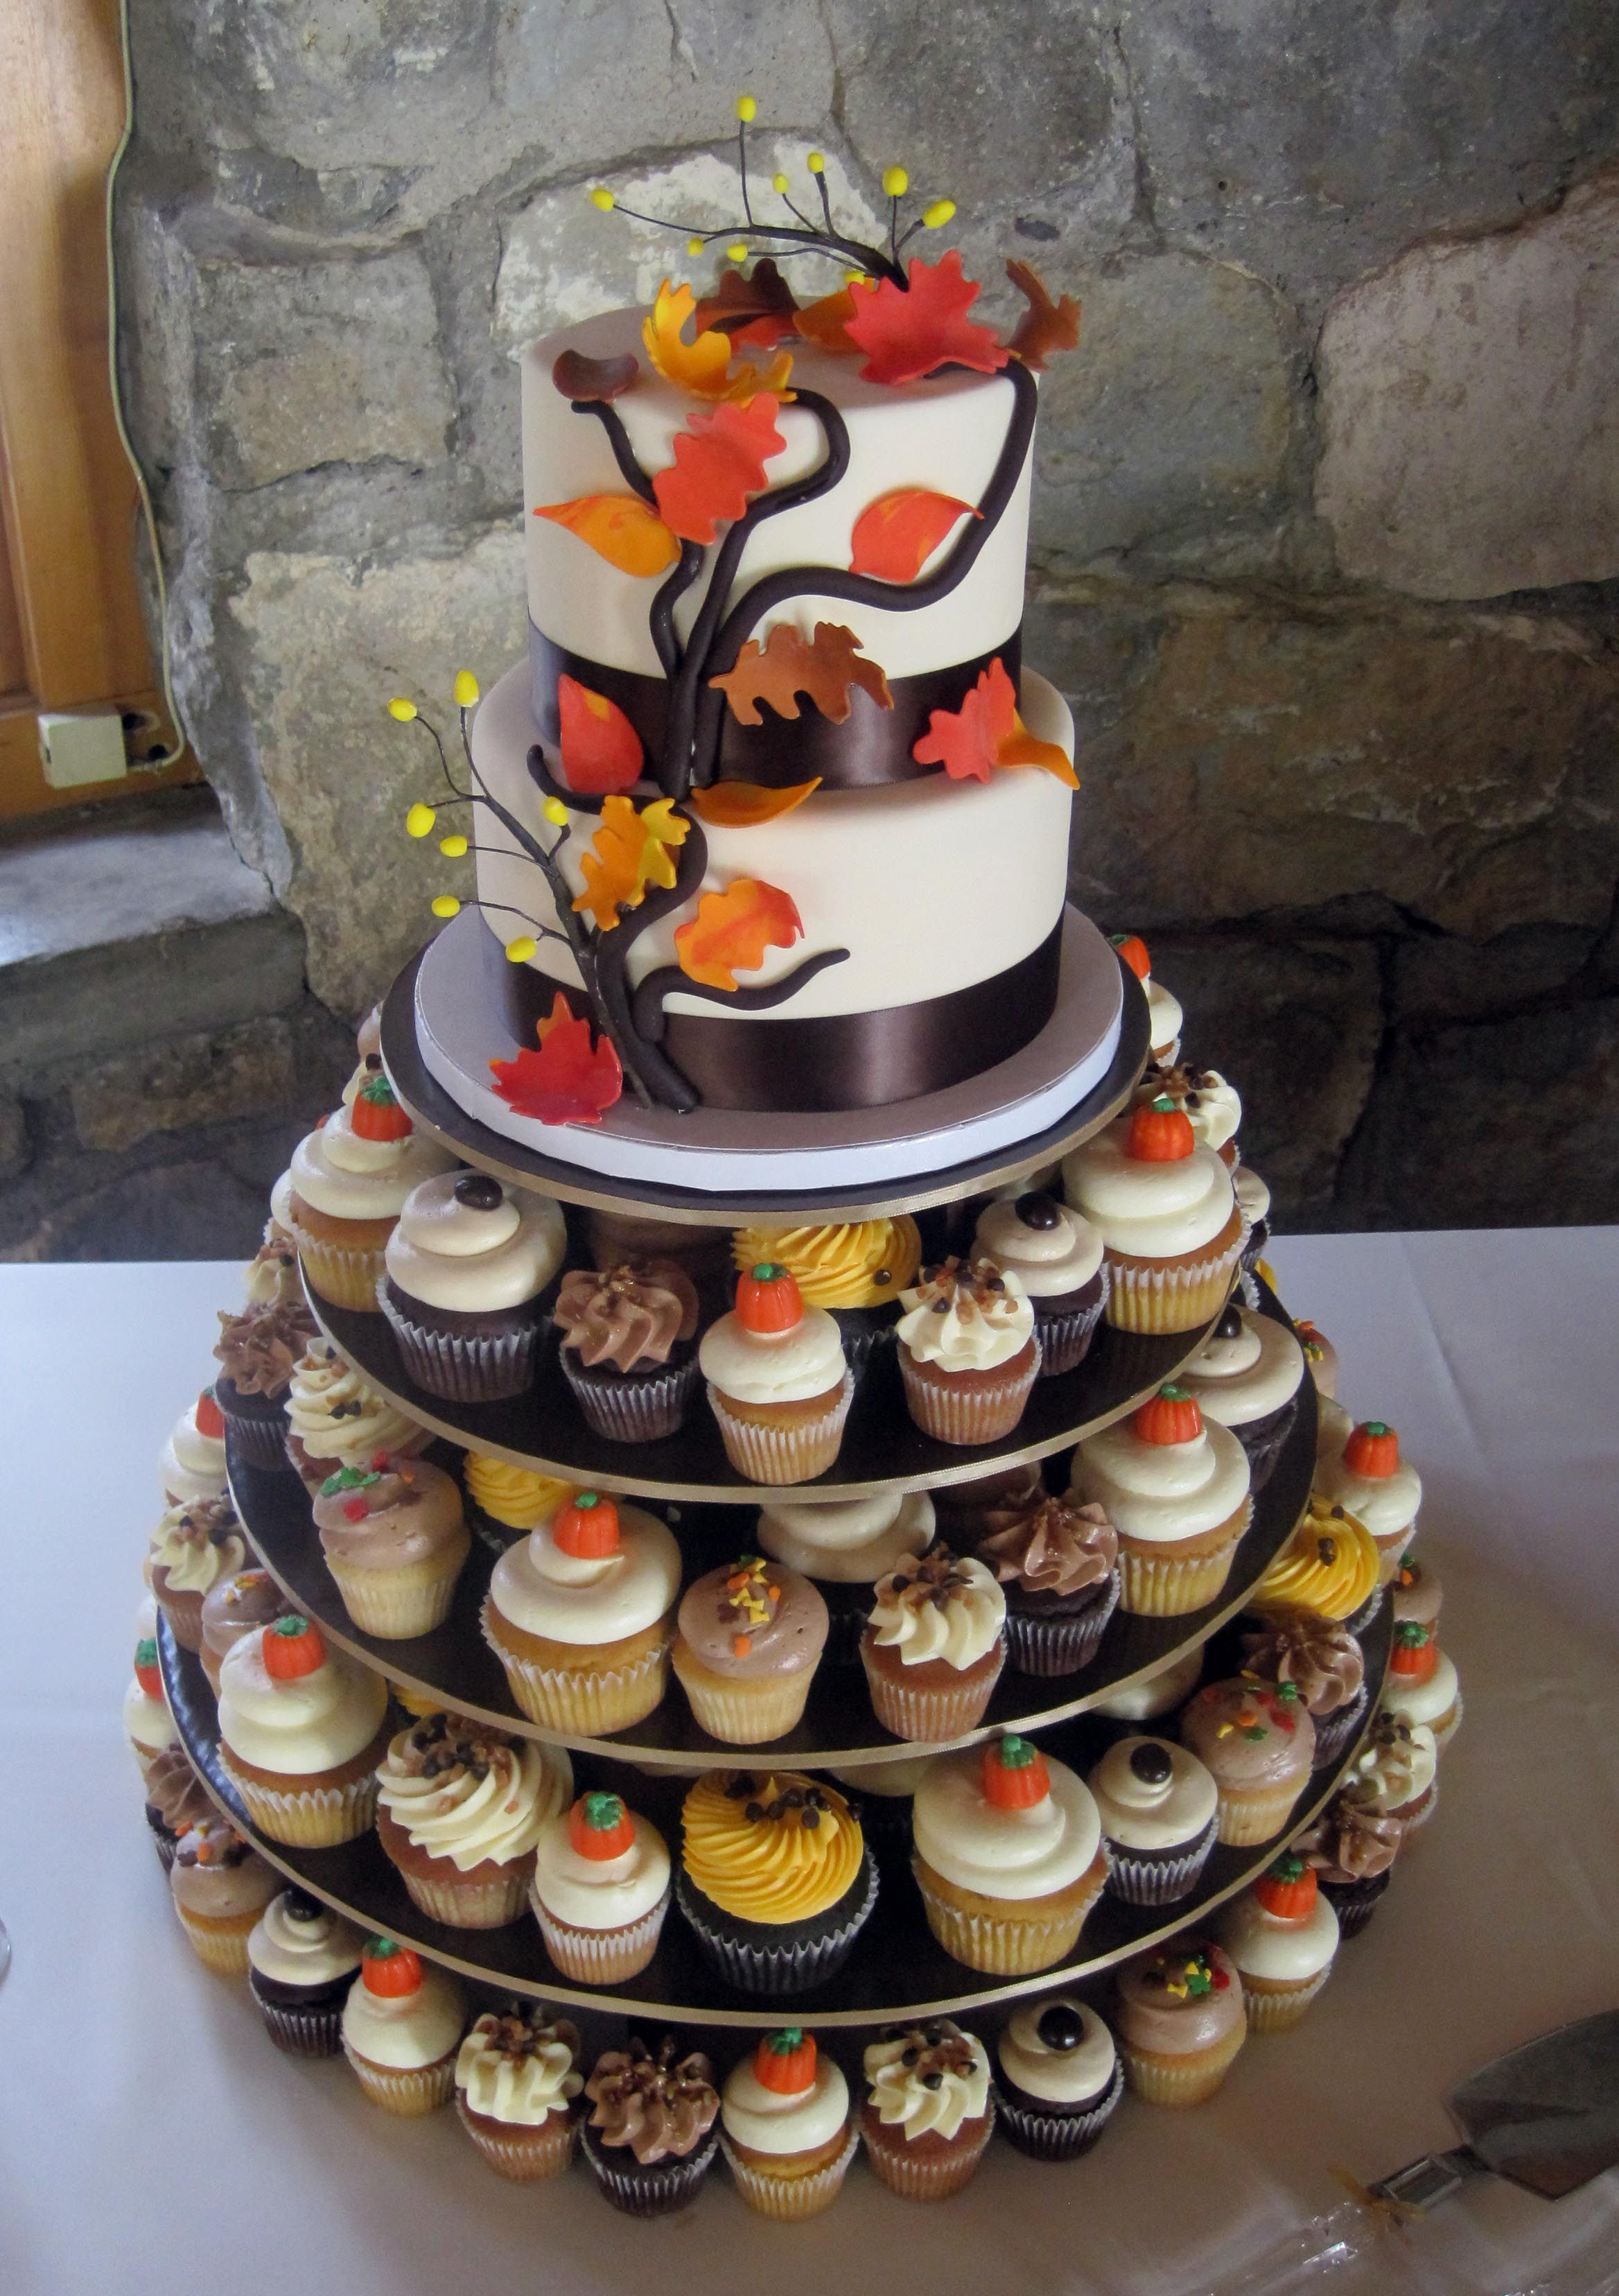 2 Tier Autumn Cutting Cake Amp Assorted Cupcakes